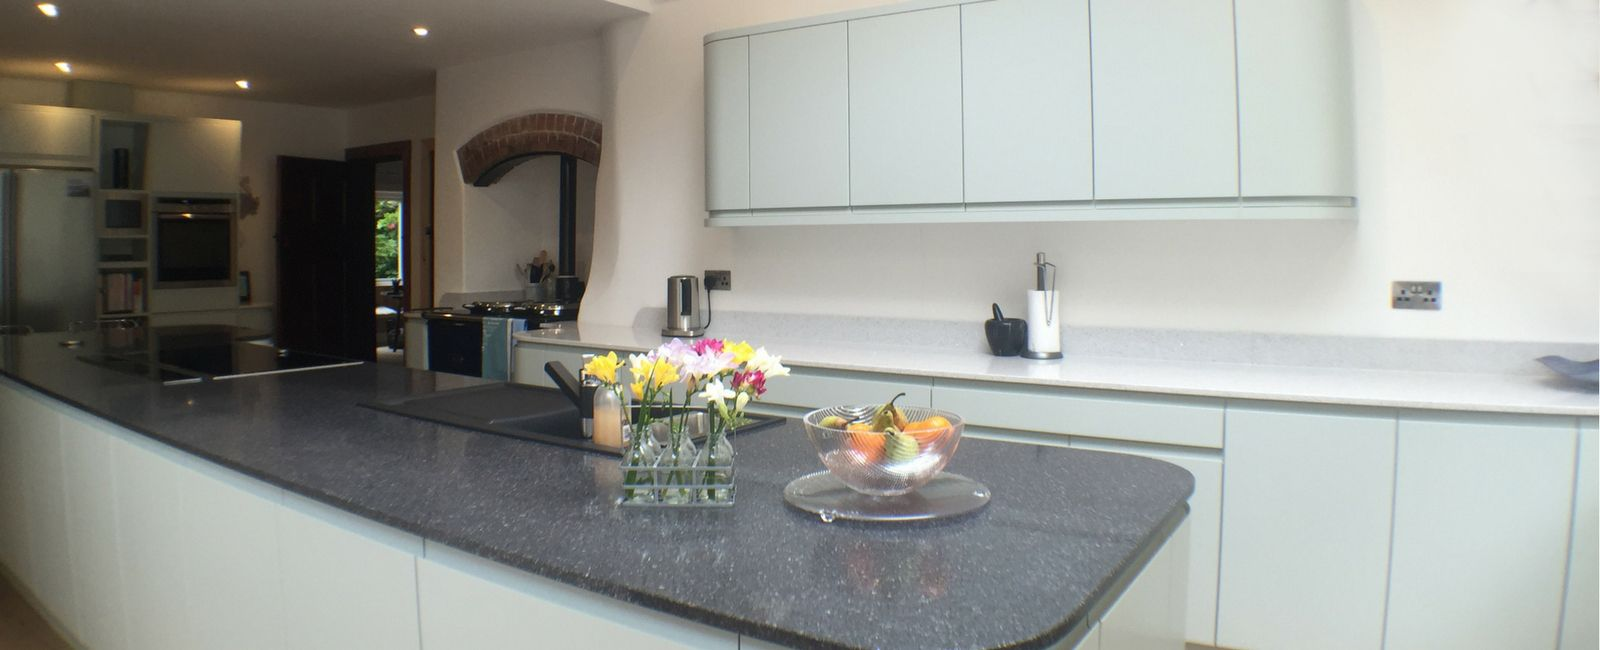 Exceptionnel Wisteria Cottage Kitchen Simply Kitchens, Plymouth. Kitchen Design And  Fitting.